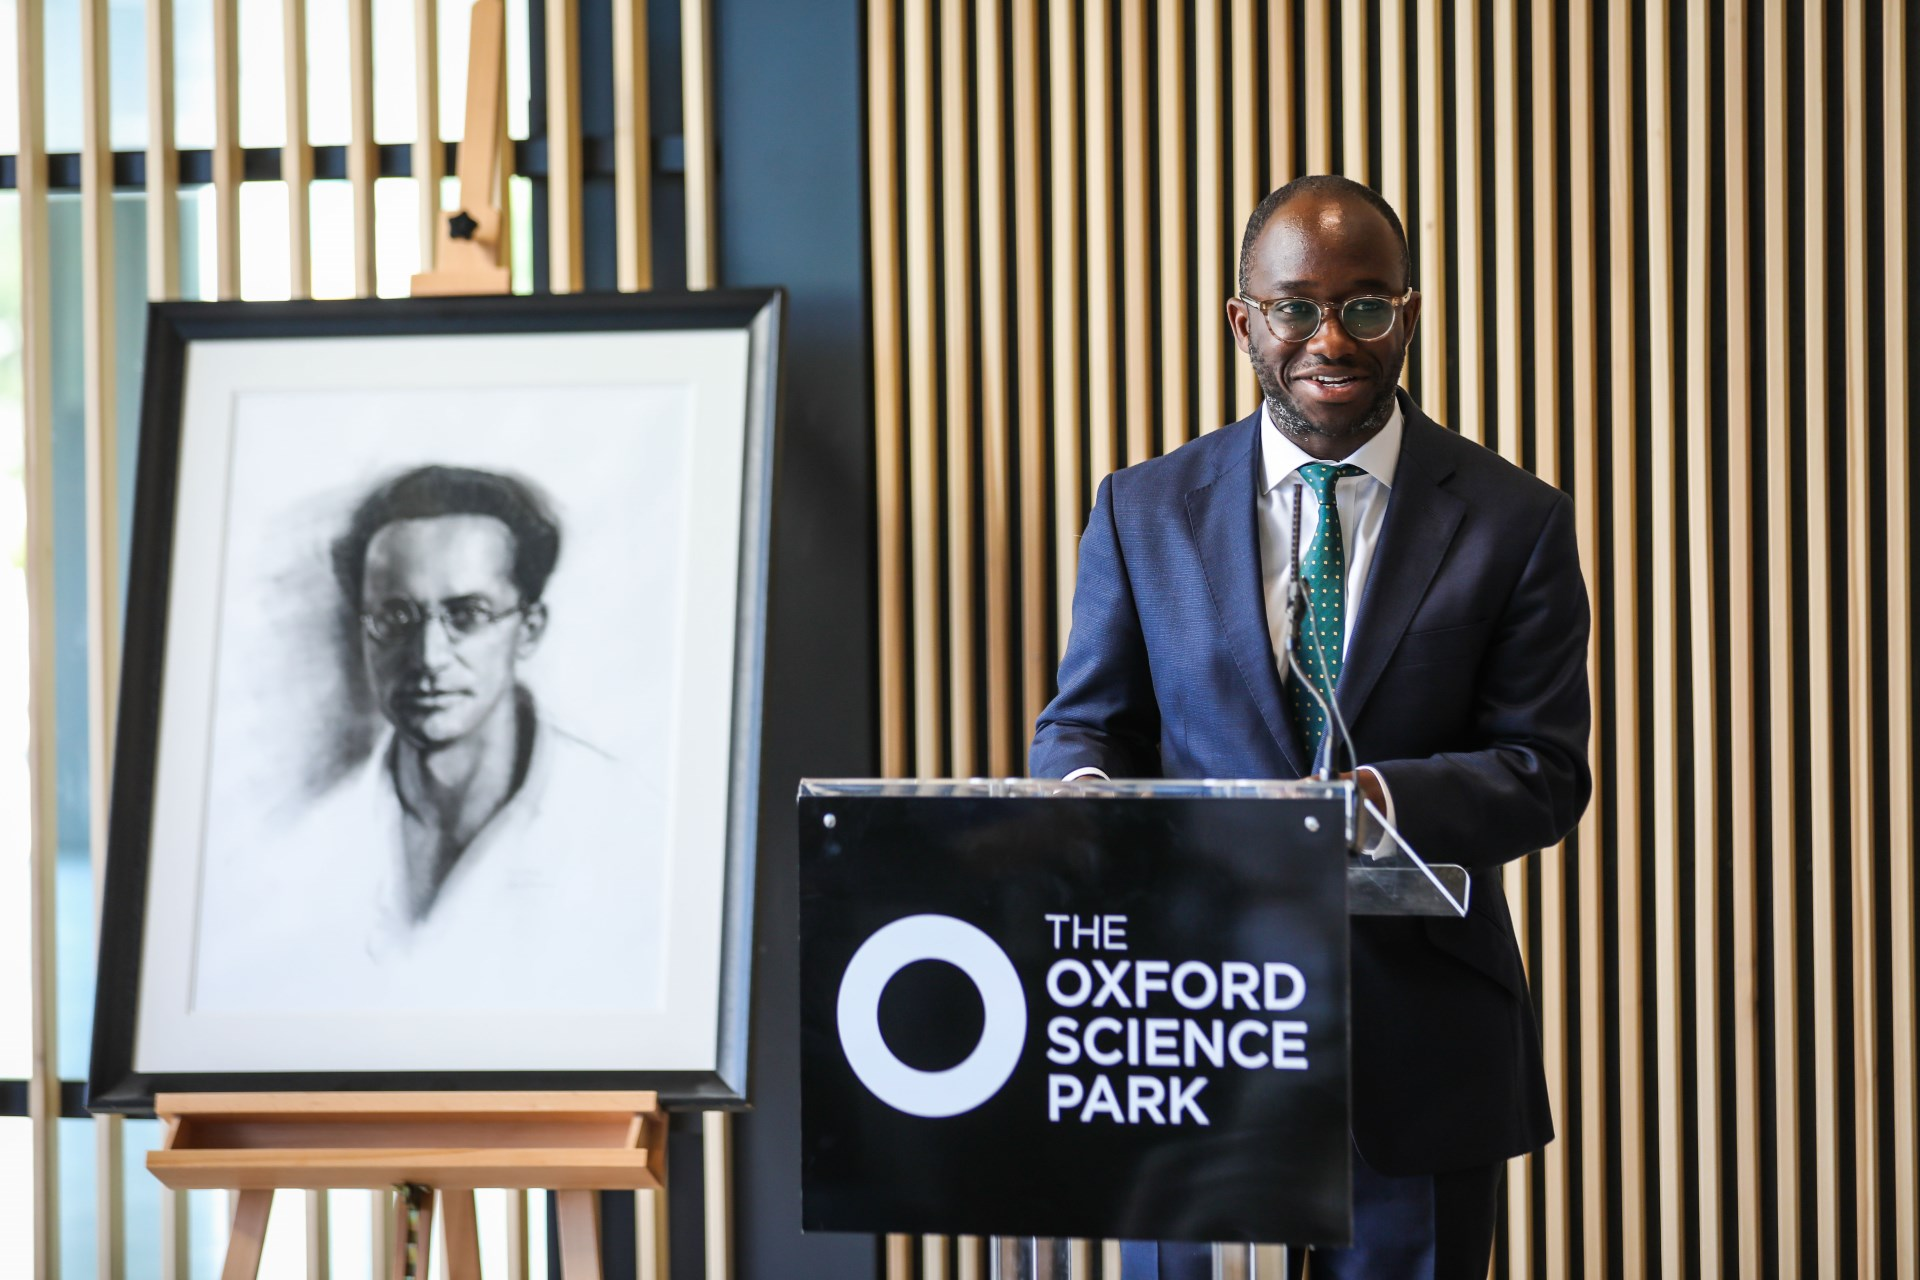 Minister of State Sam Gyimah MP to open Schrödinger Building at The Oxford Science Park